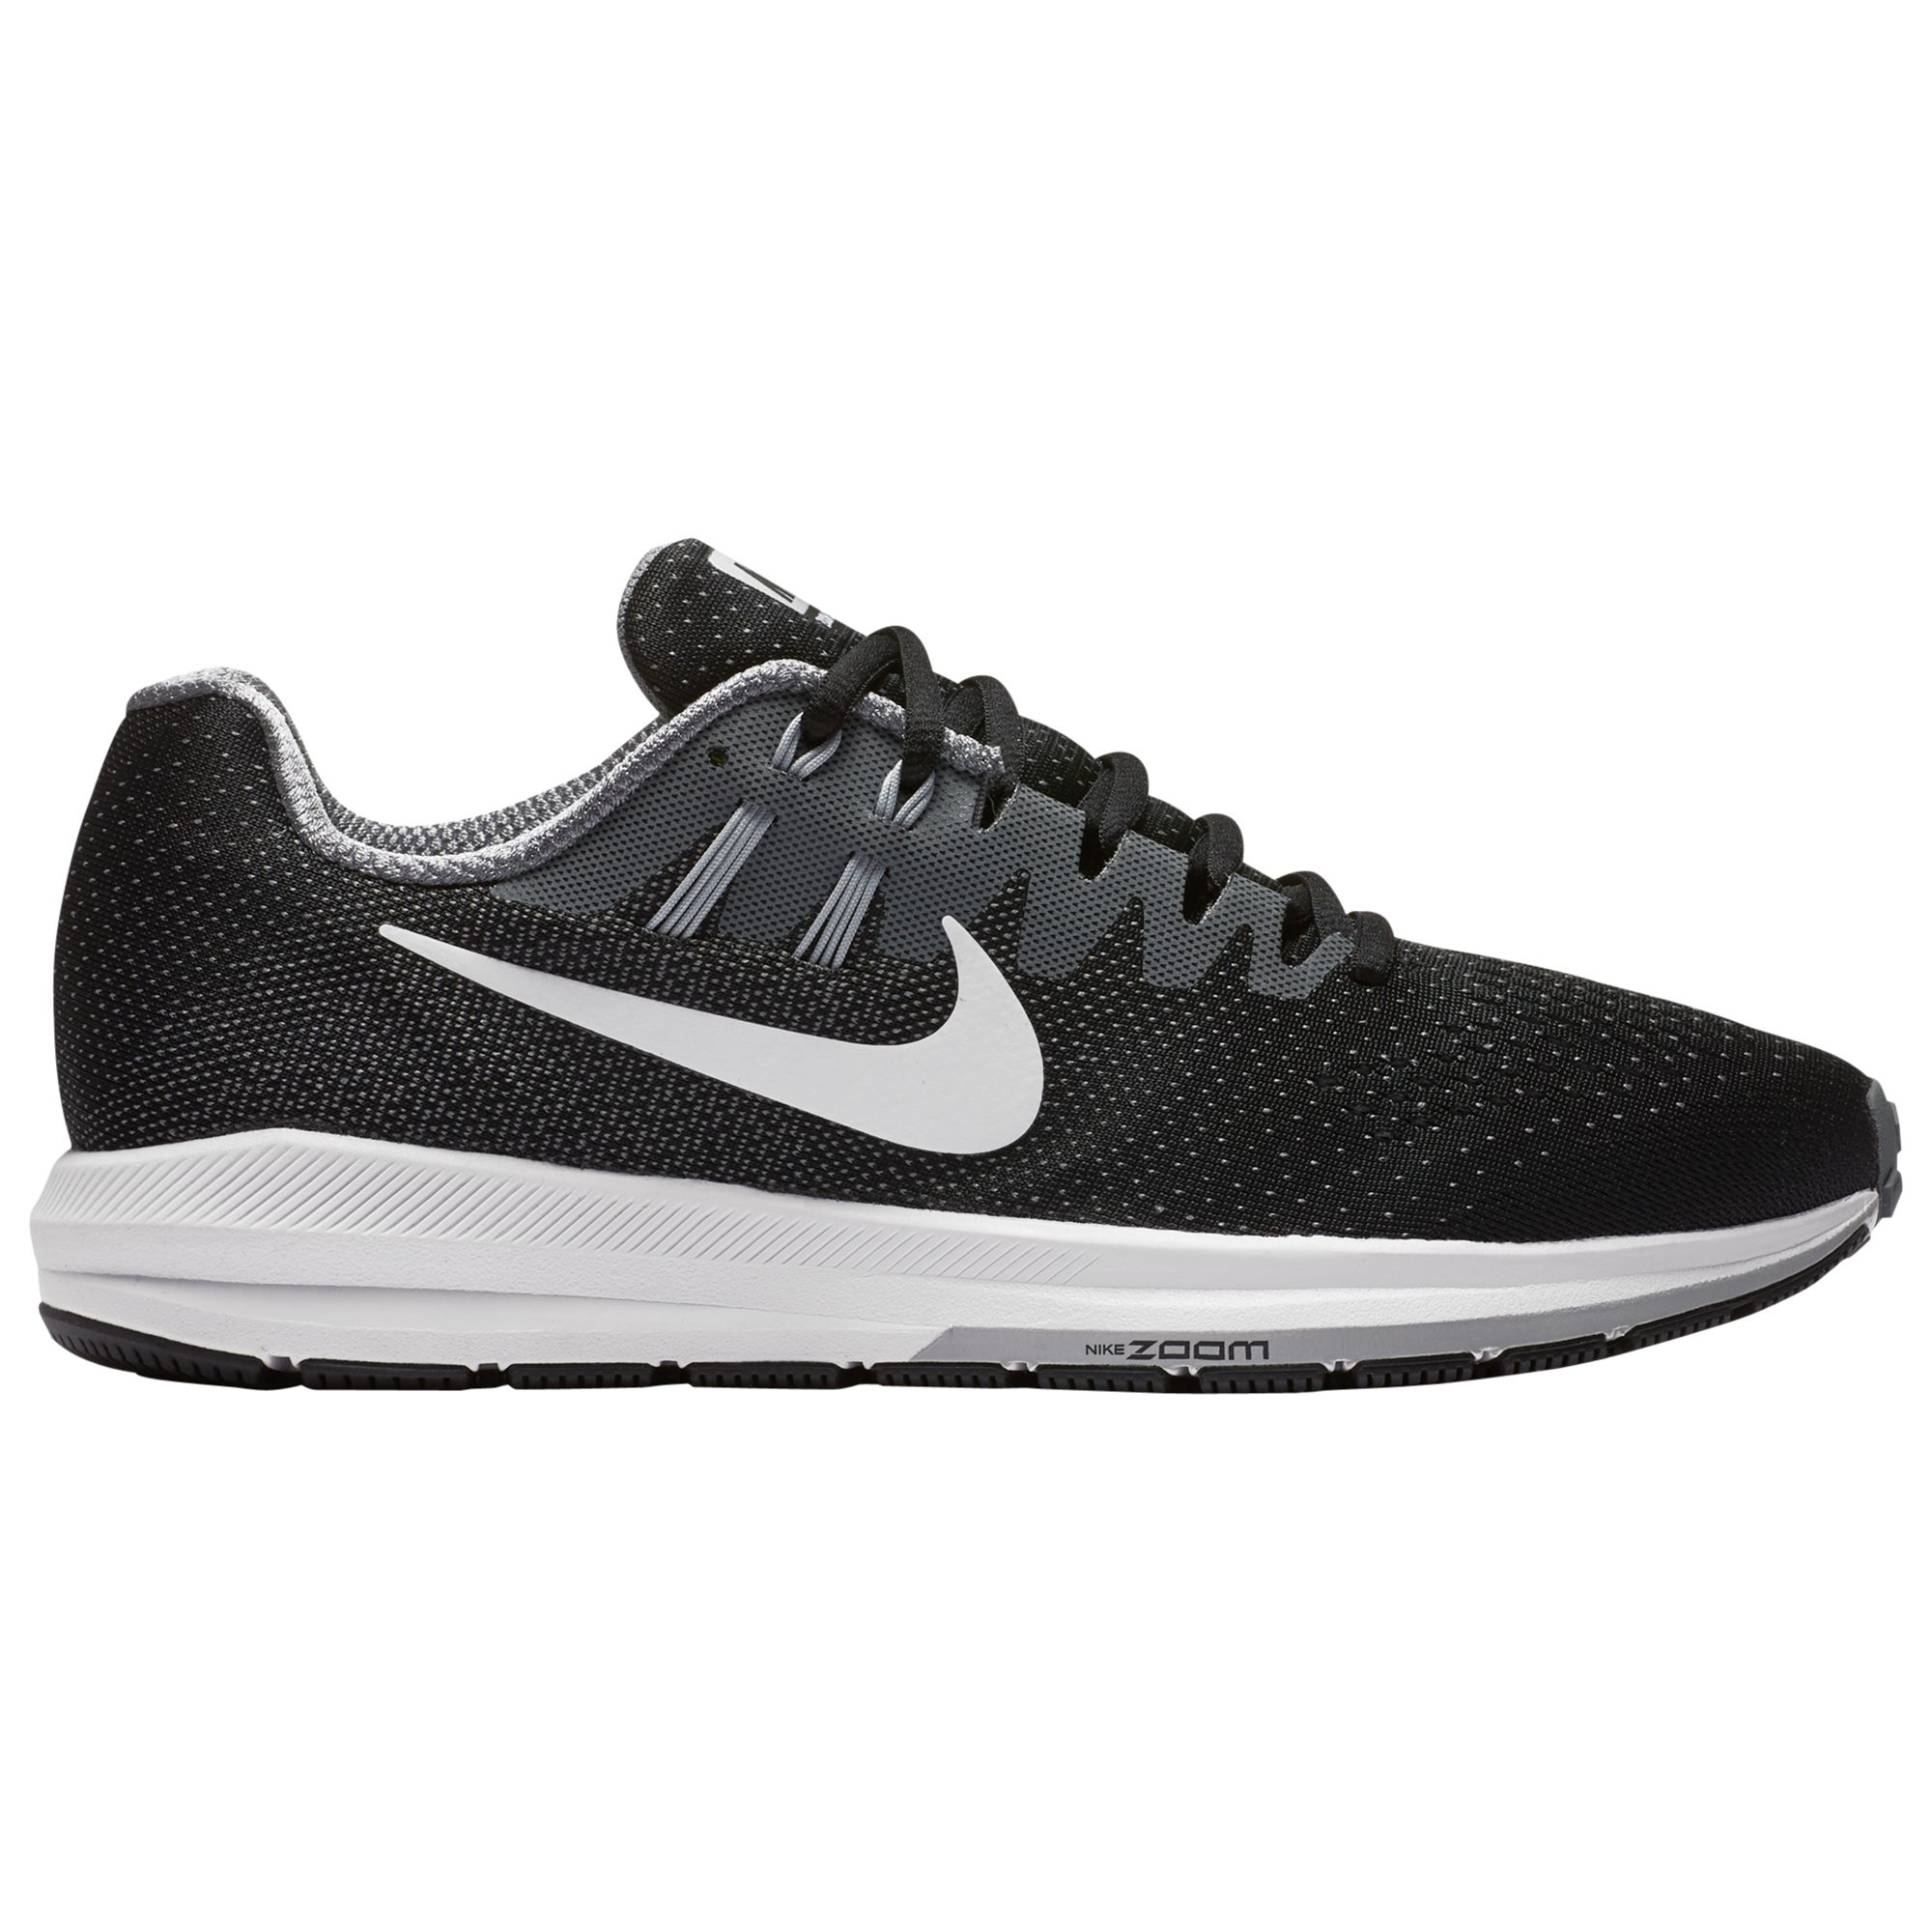 preschool nike Air Zoom Structure 20 Nike Air Zoom Structure 20 Men's Running Shoes, Black at John ...